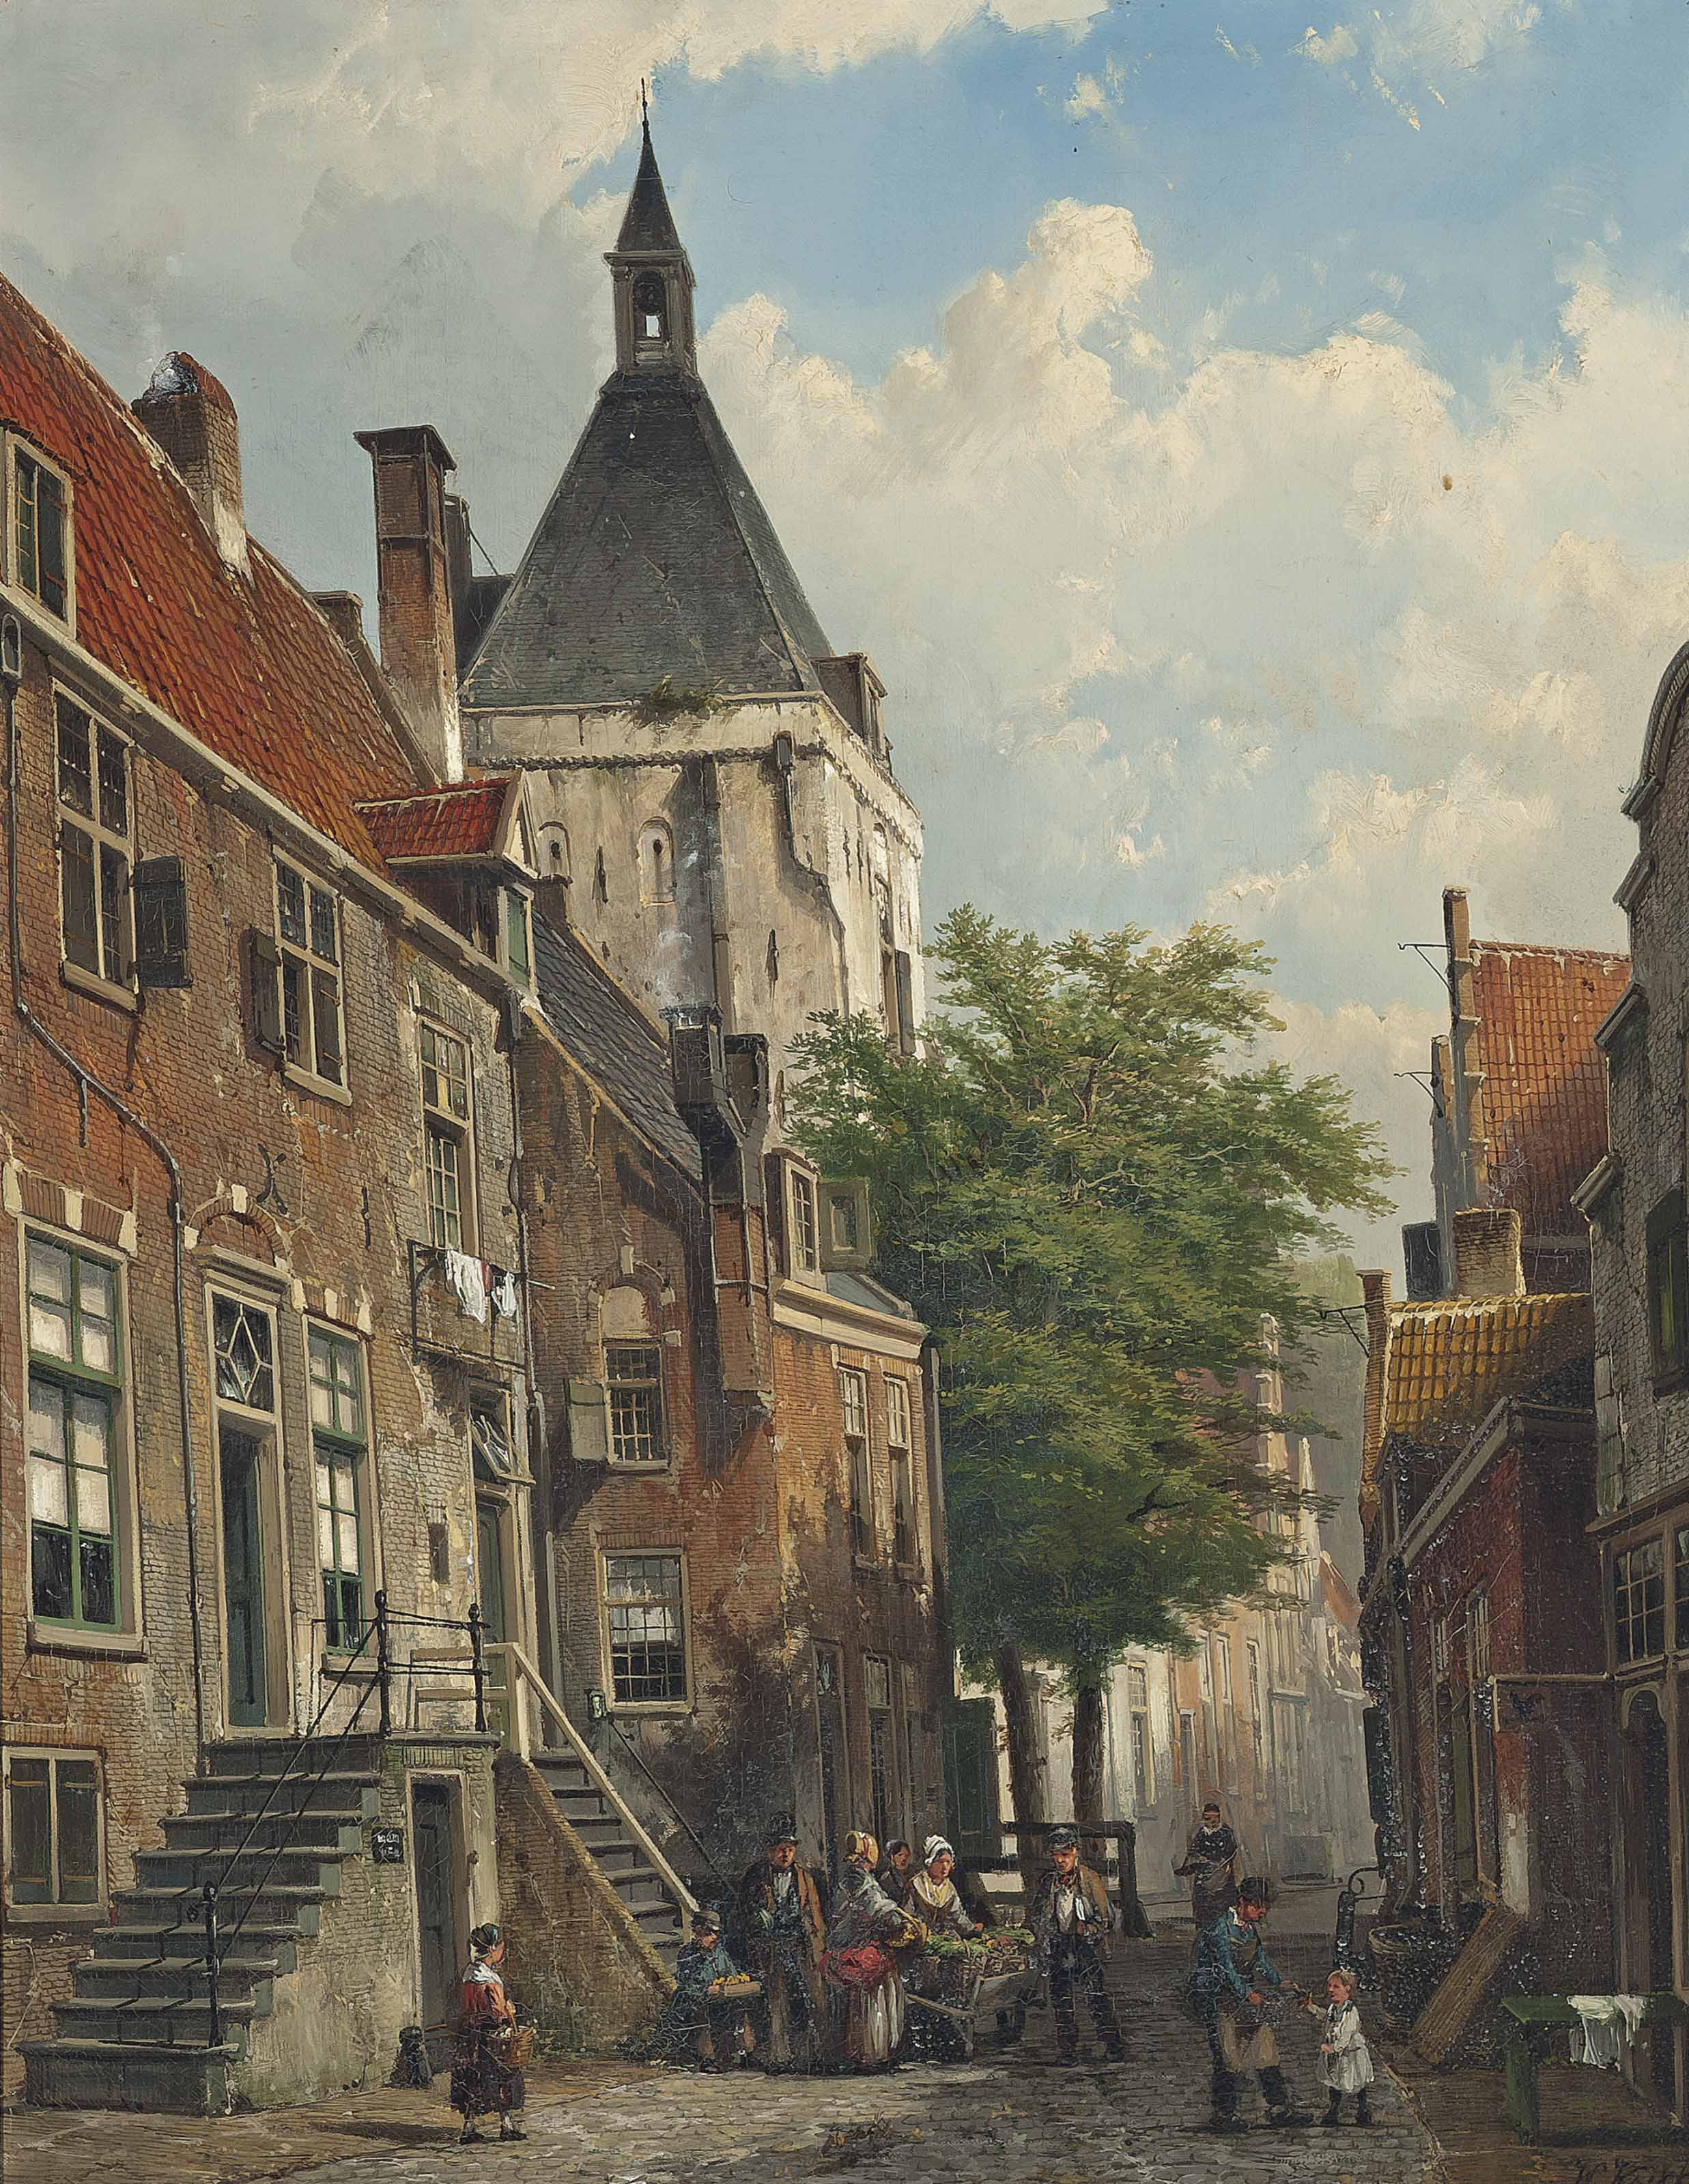 Figures conversing in a Dutch street